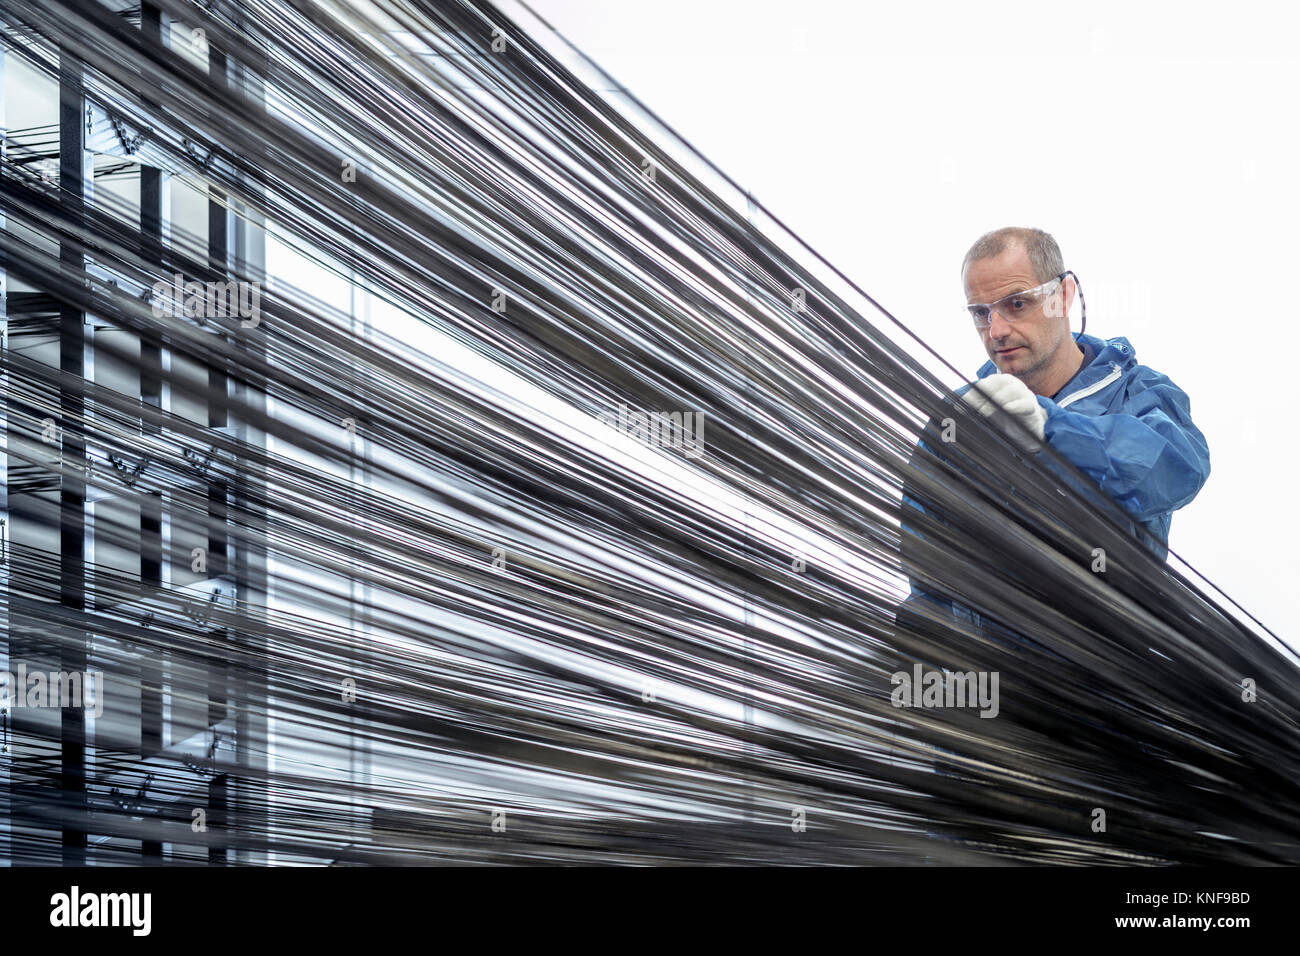 Operator with carbon fibre thread on loom in carbon fibre production facility - Stock Image